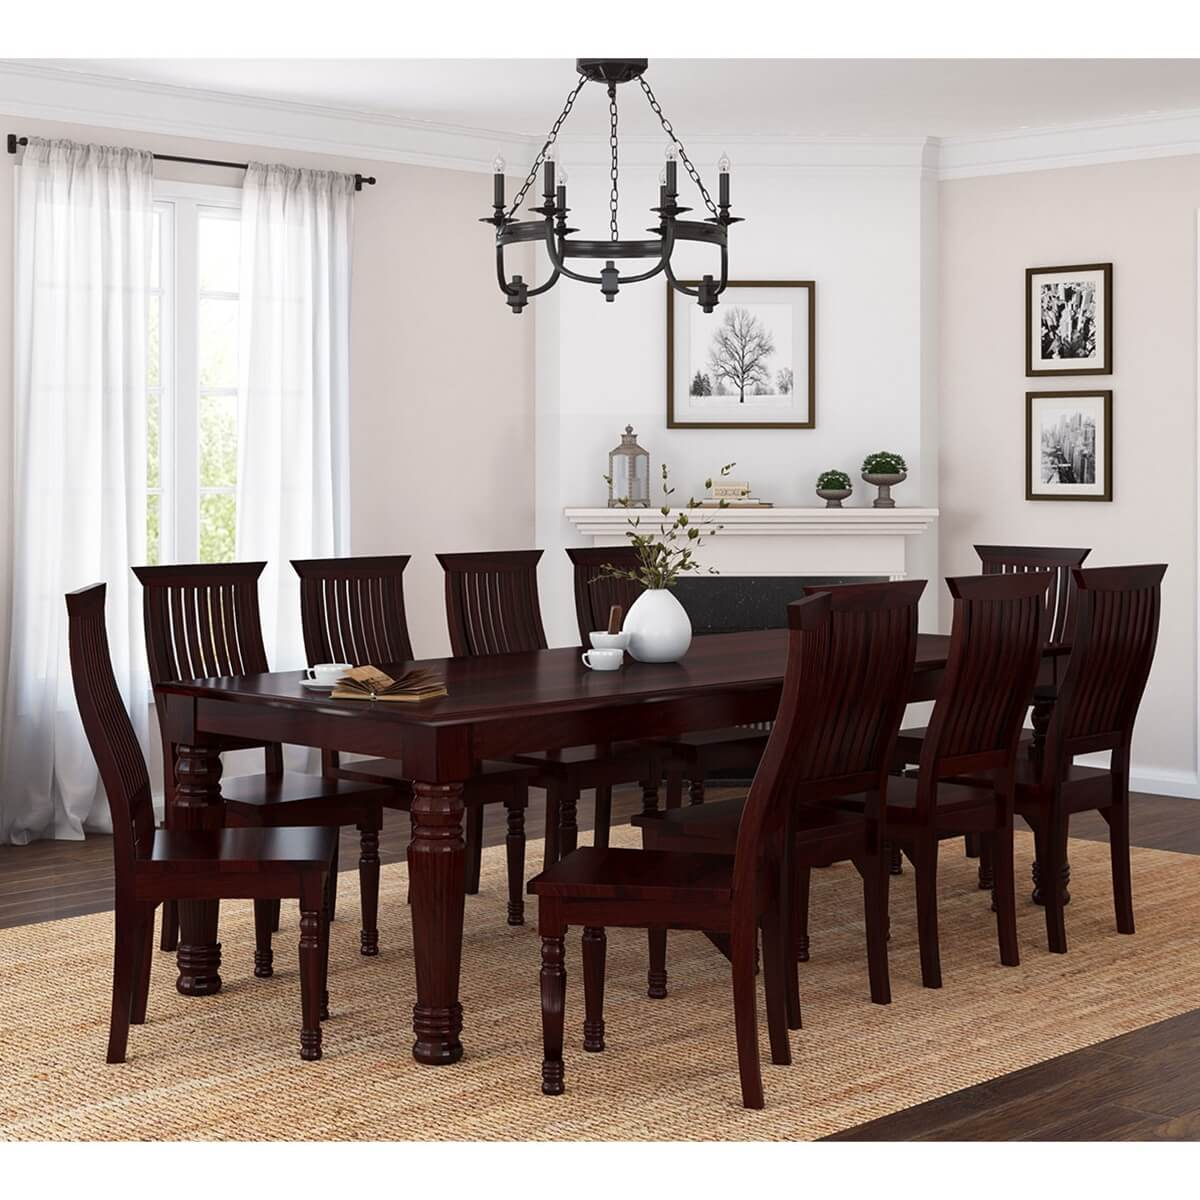 Cochrane Dining Room Furniture: Colonial American Large Rustic Wood Dining Table And 10